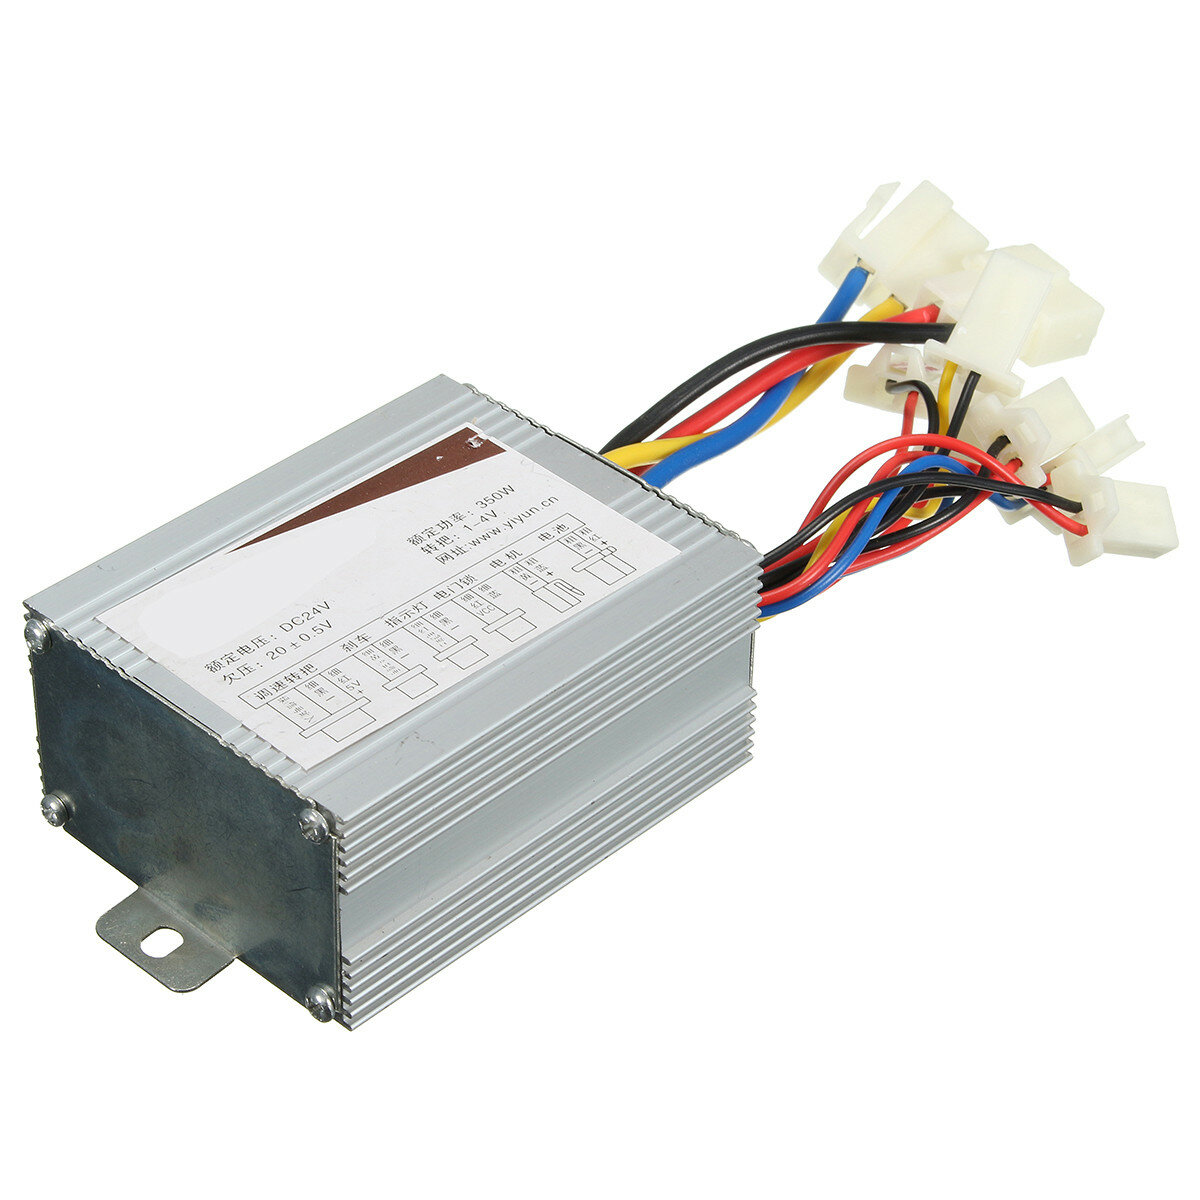 hight resolution of 24v 350w motor brush speed controller for electric bike bicycle scooter e bike